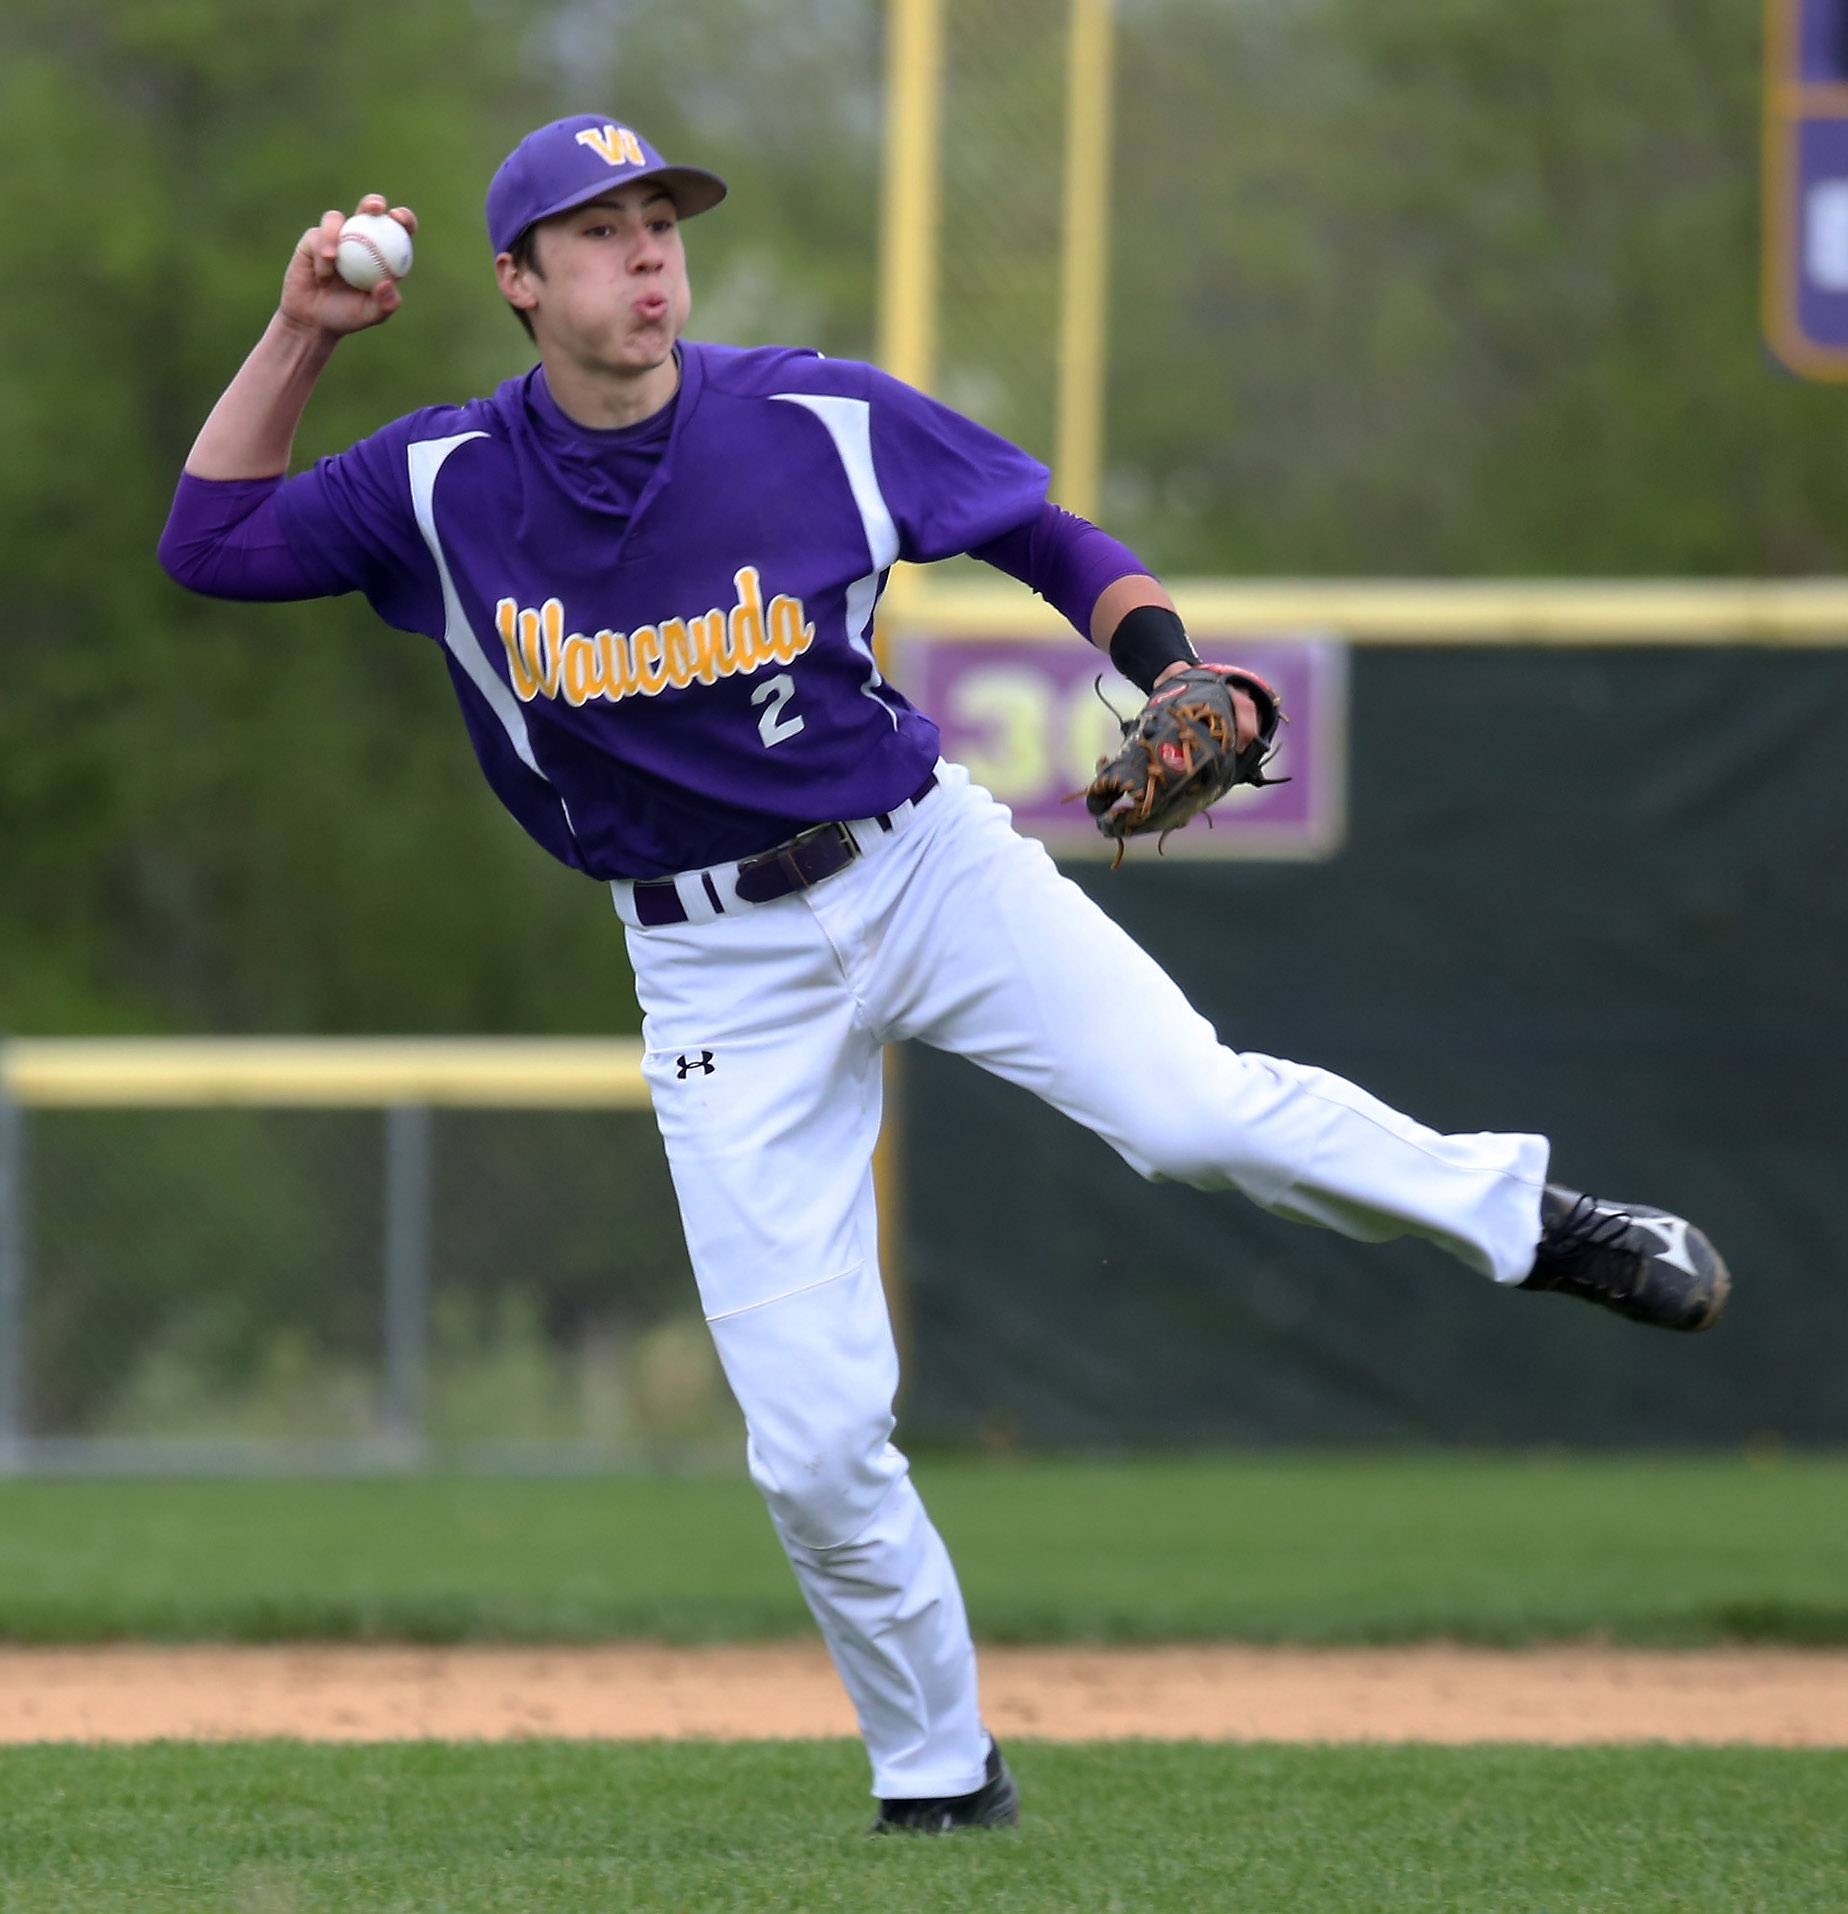 Wauconda shortstop Jake Grobelny scoops up a groundball before throwing to first base Wednesday against visiting Lakes.